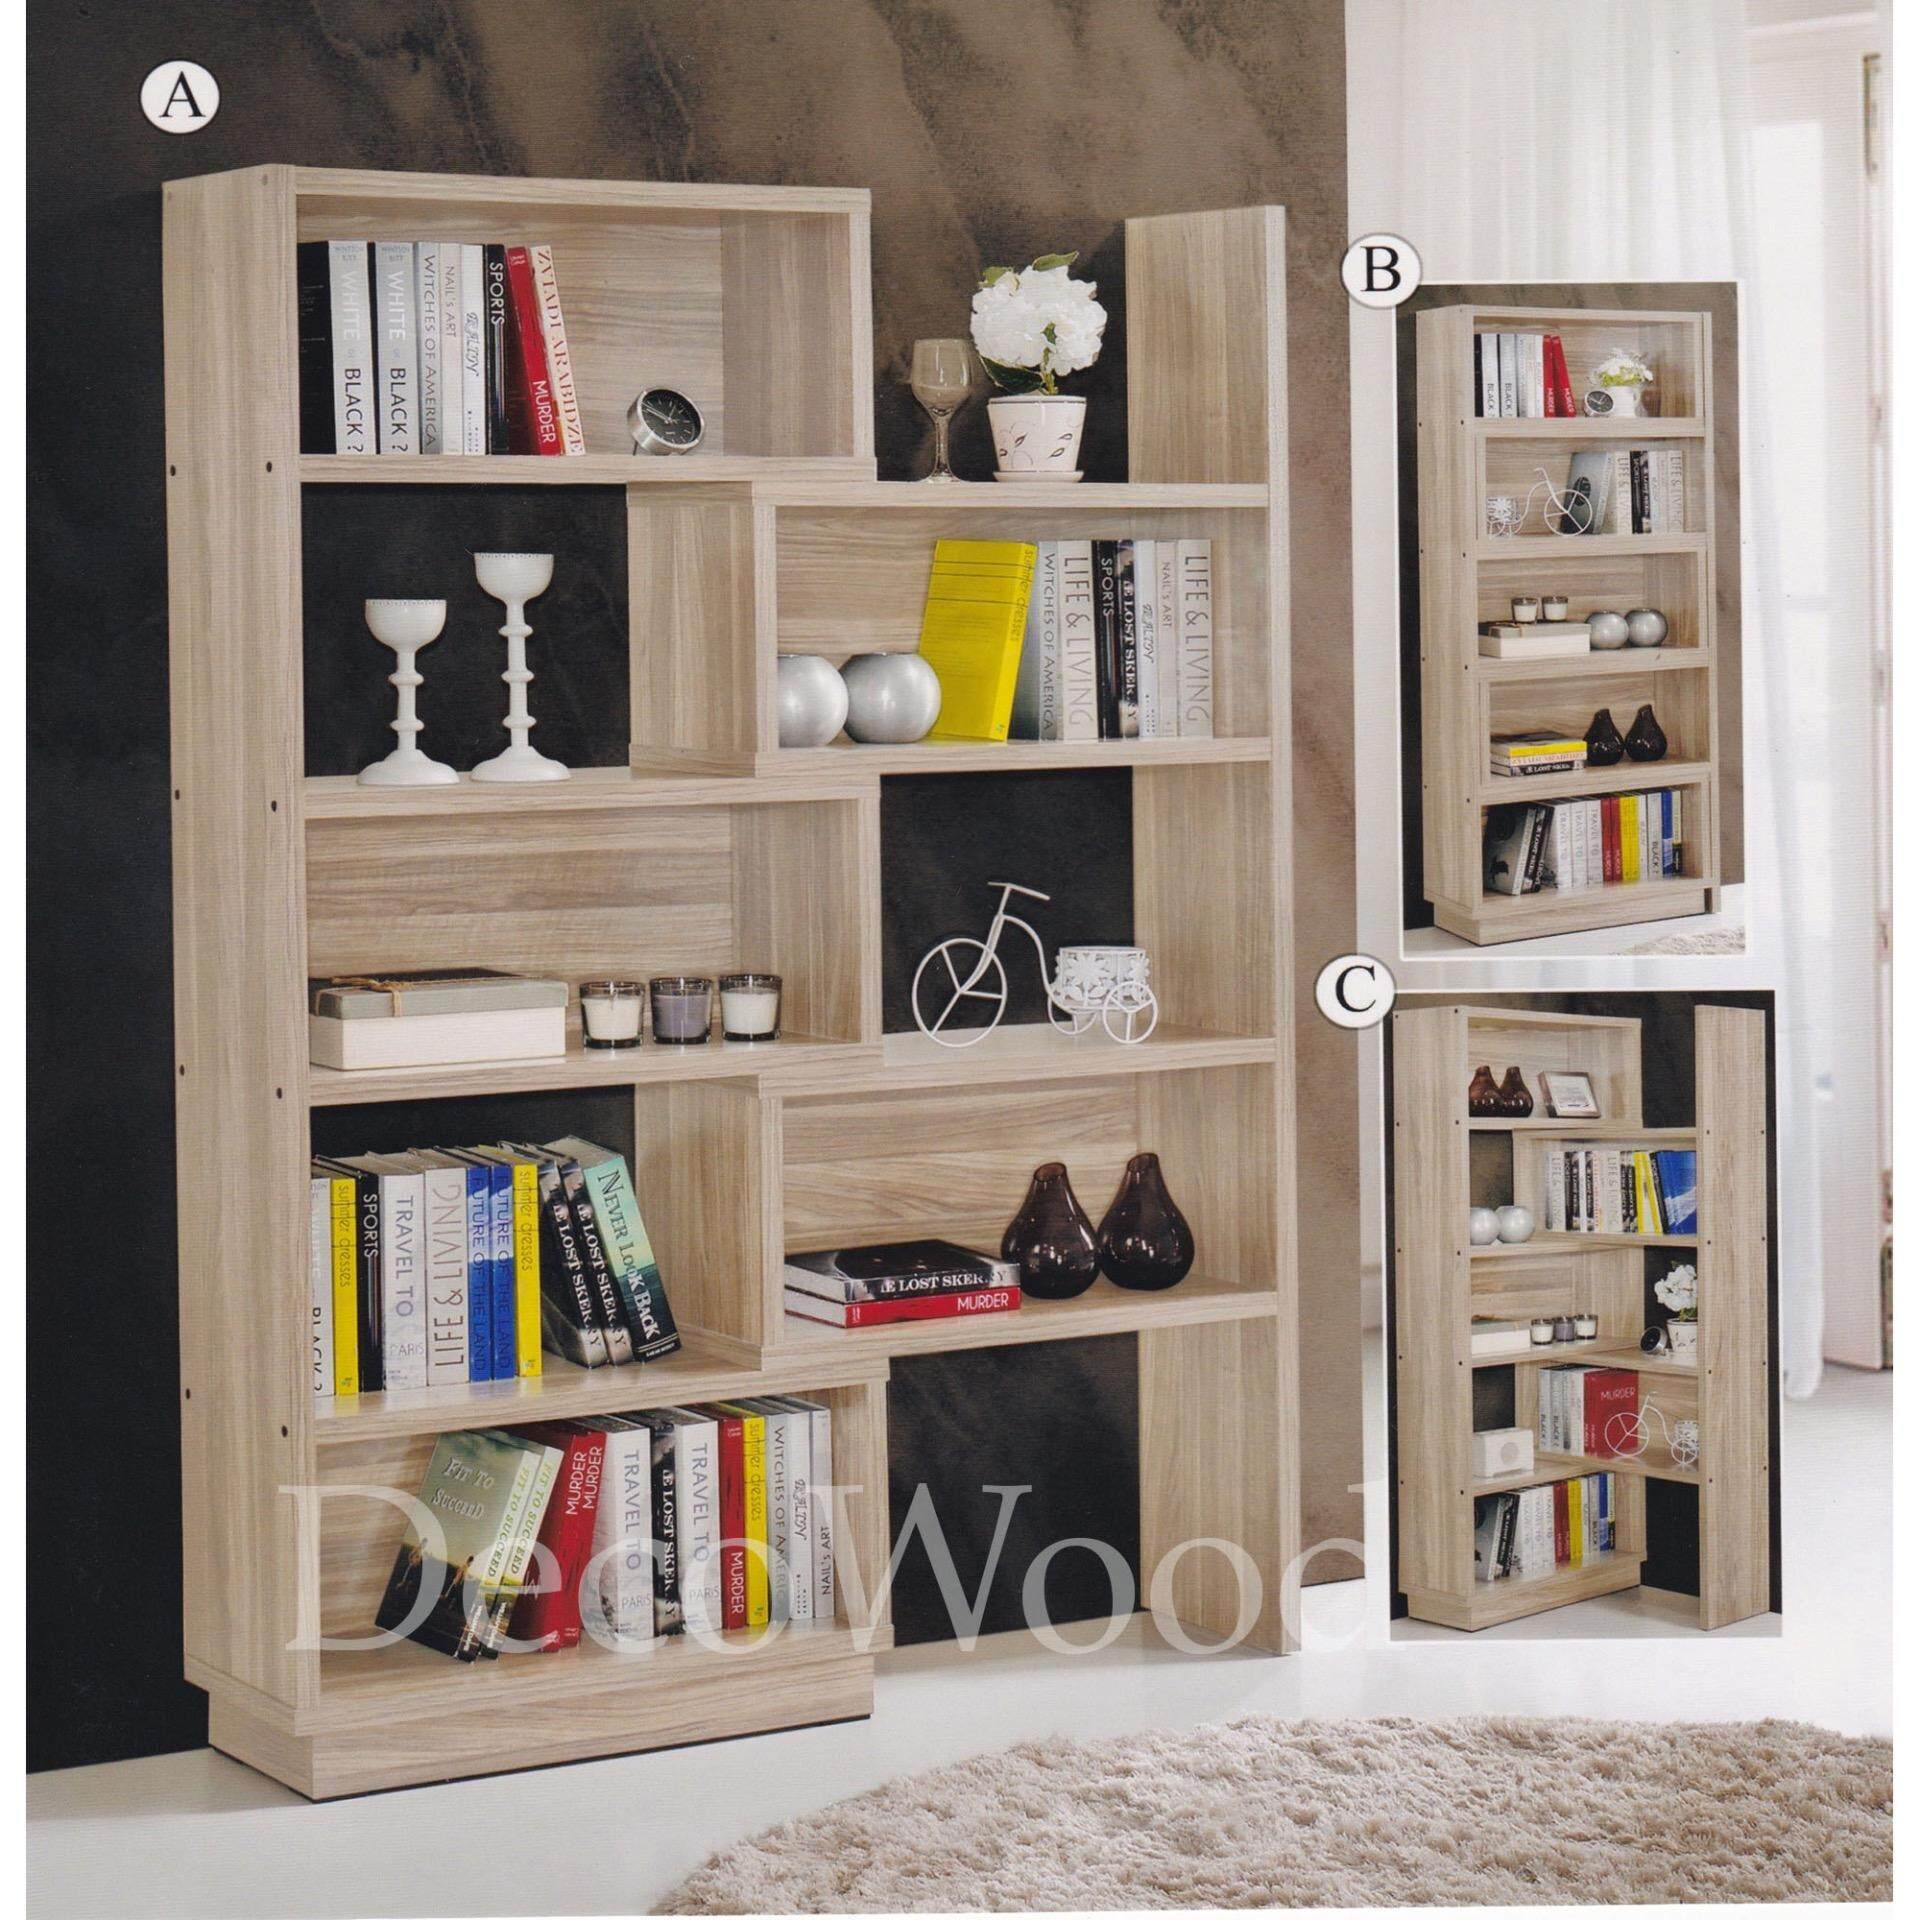 5-Feet Adjustable Divider Solid Book Cabinet Case Display Cabinet (Cream) L1550MM X W305MM X H1800MM